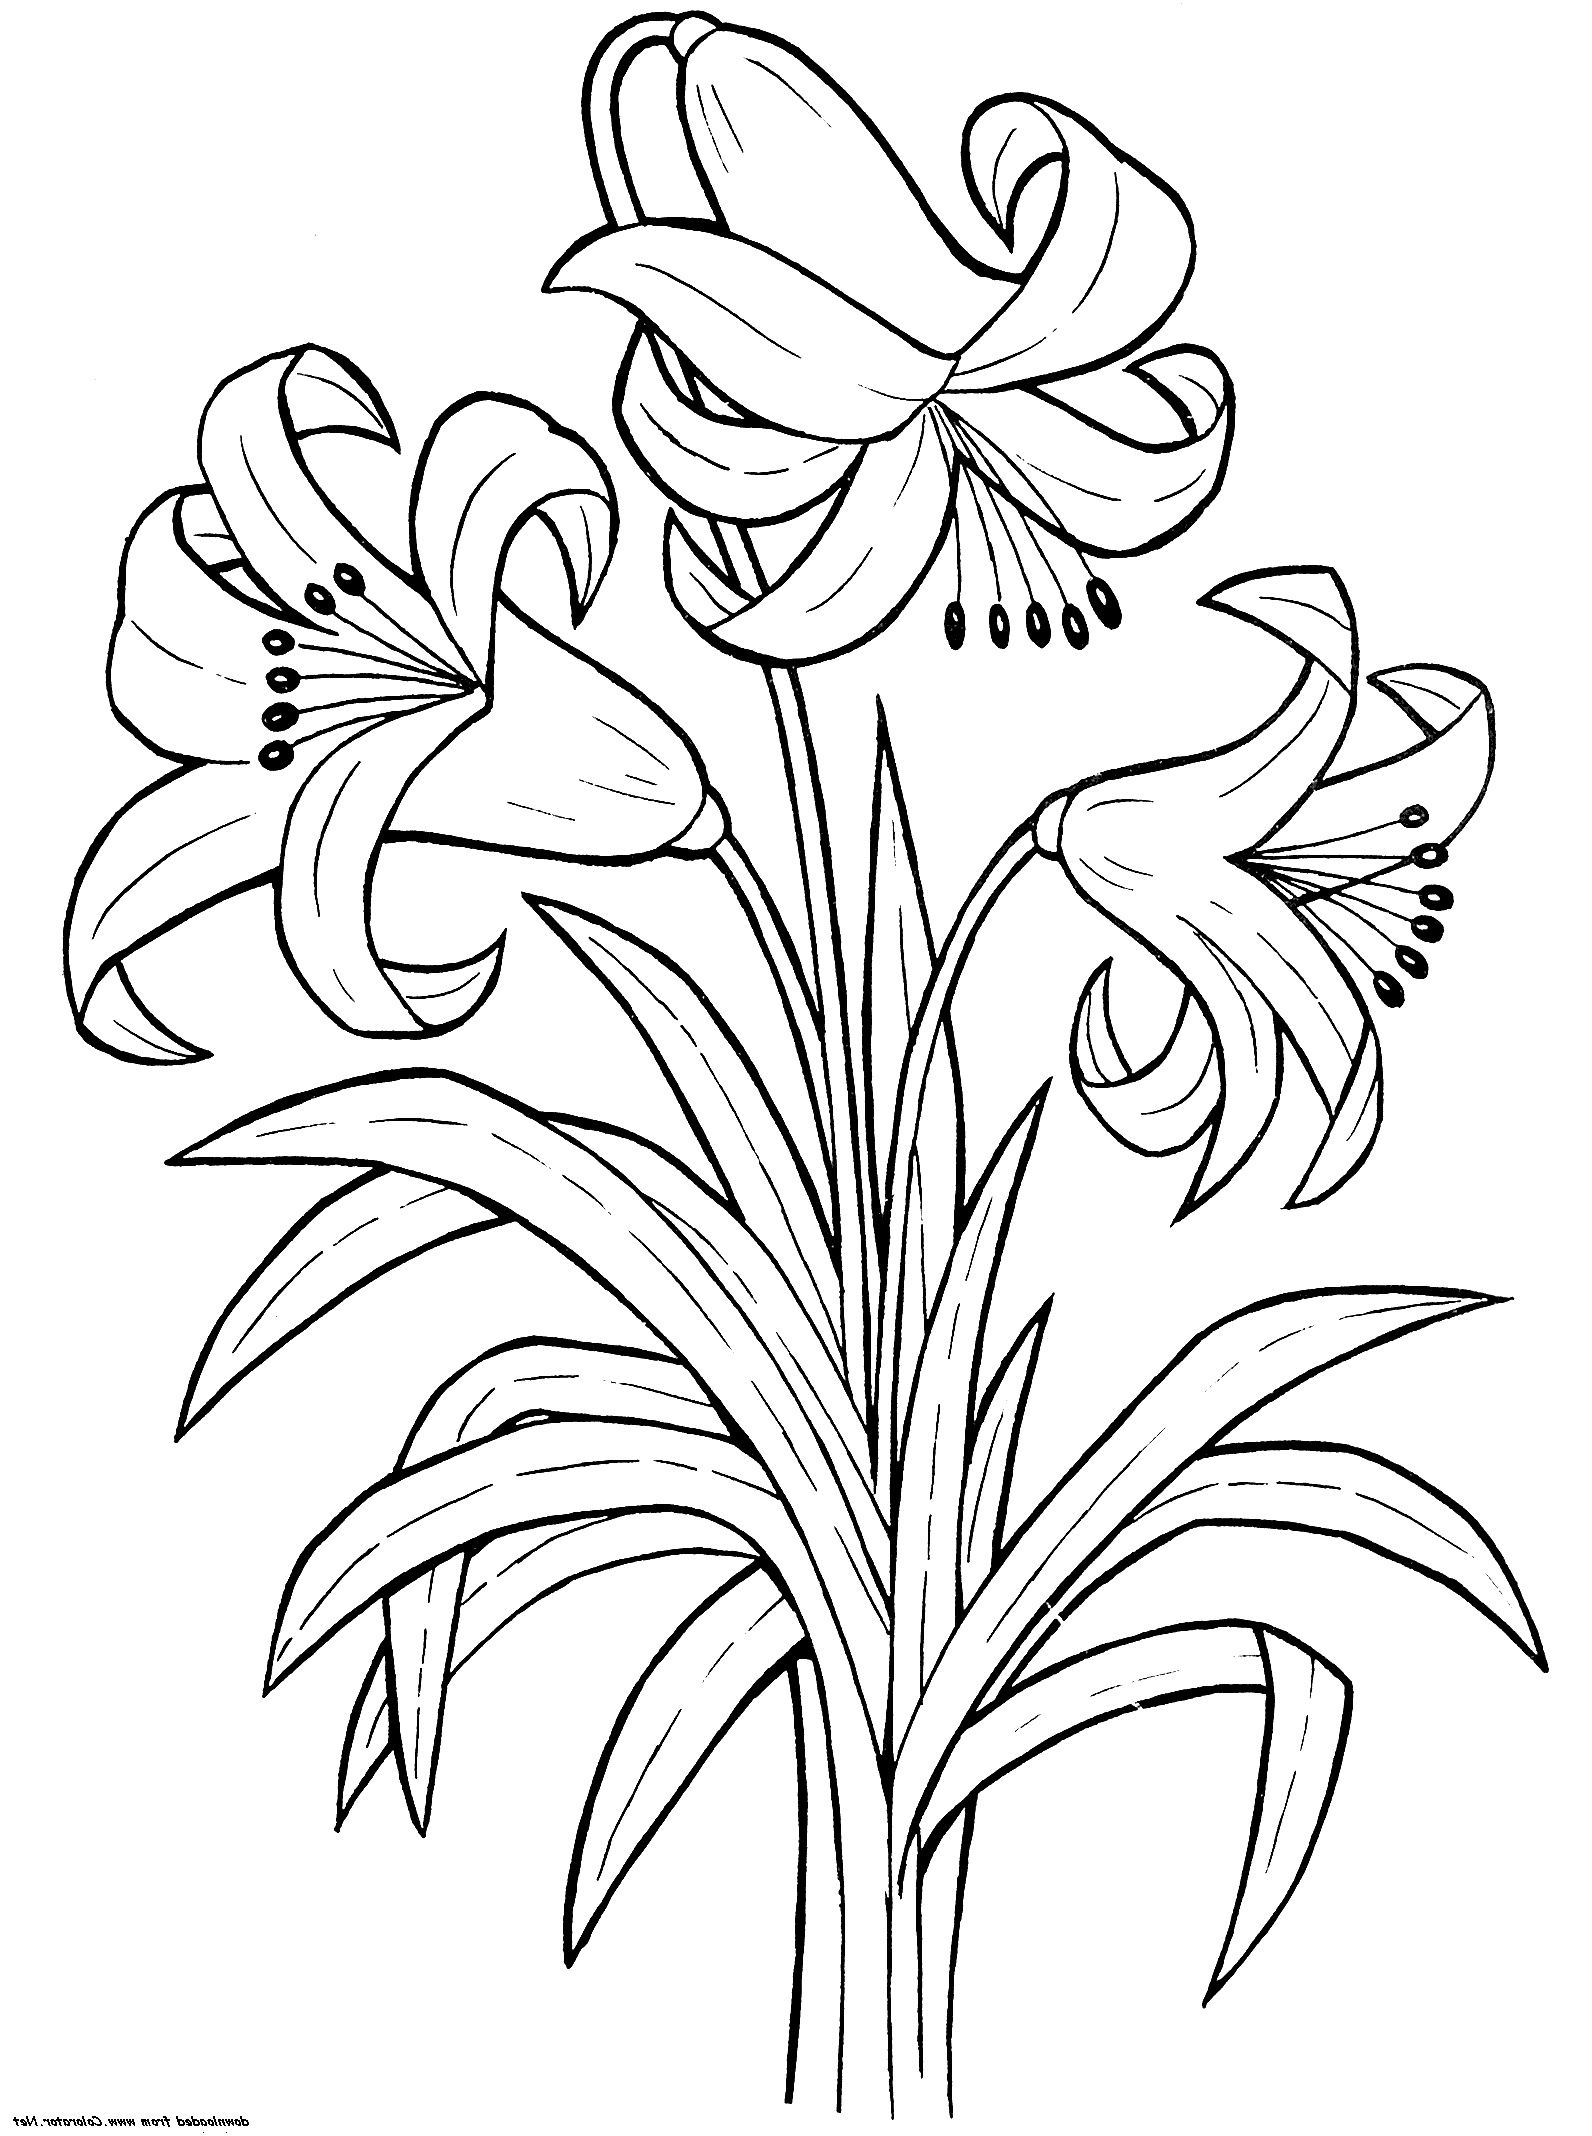 Printable Lily Flower Coloring Pages K5 Worksheets